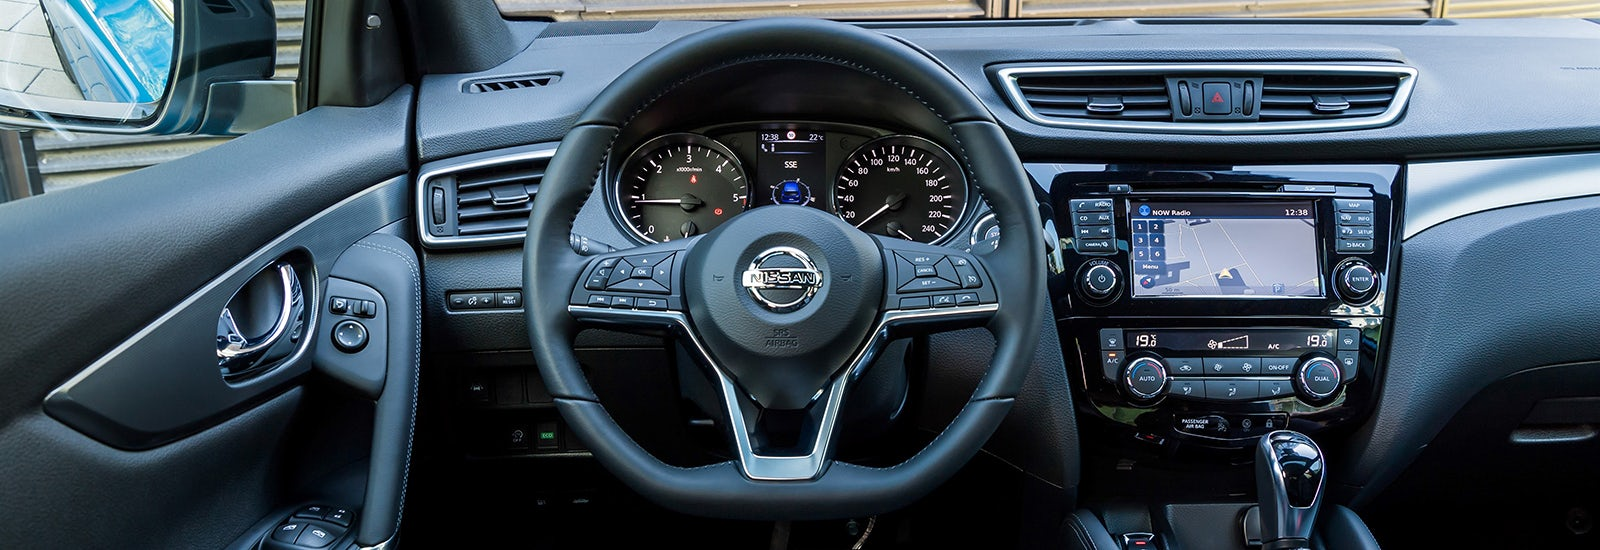 2017 nissan qashqai facelift price specs release date carwow for Interior qashqai 2018